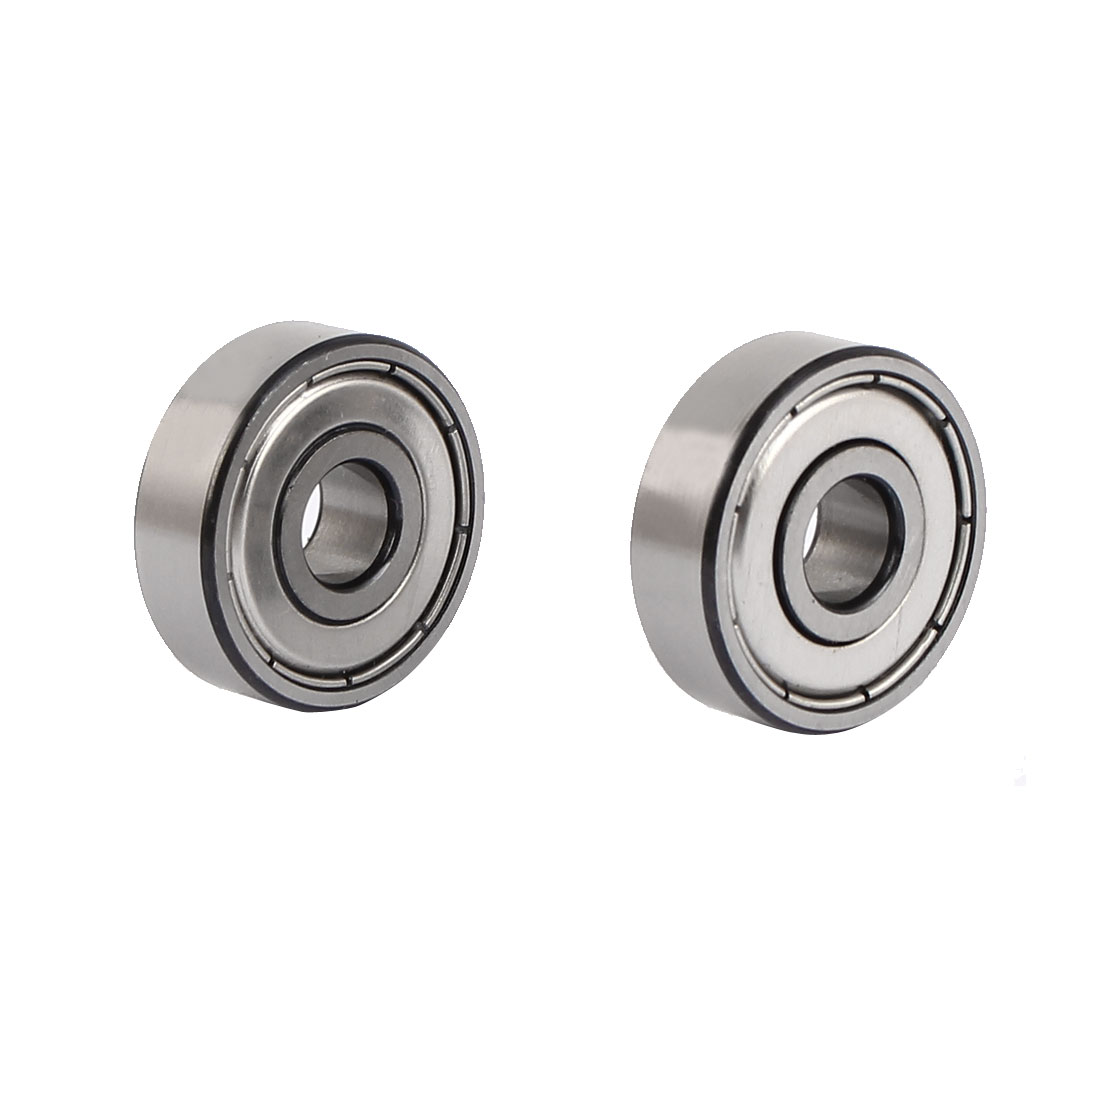 ZZ627 Dual Steel Shields Deep Groove Ball Bearing 22mmx7mmx7mm 2pcs